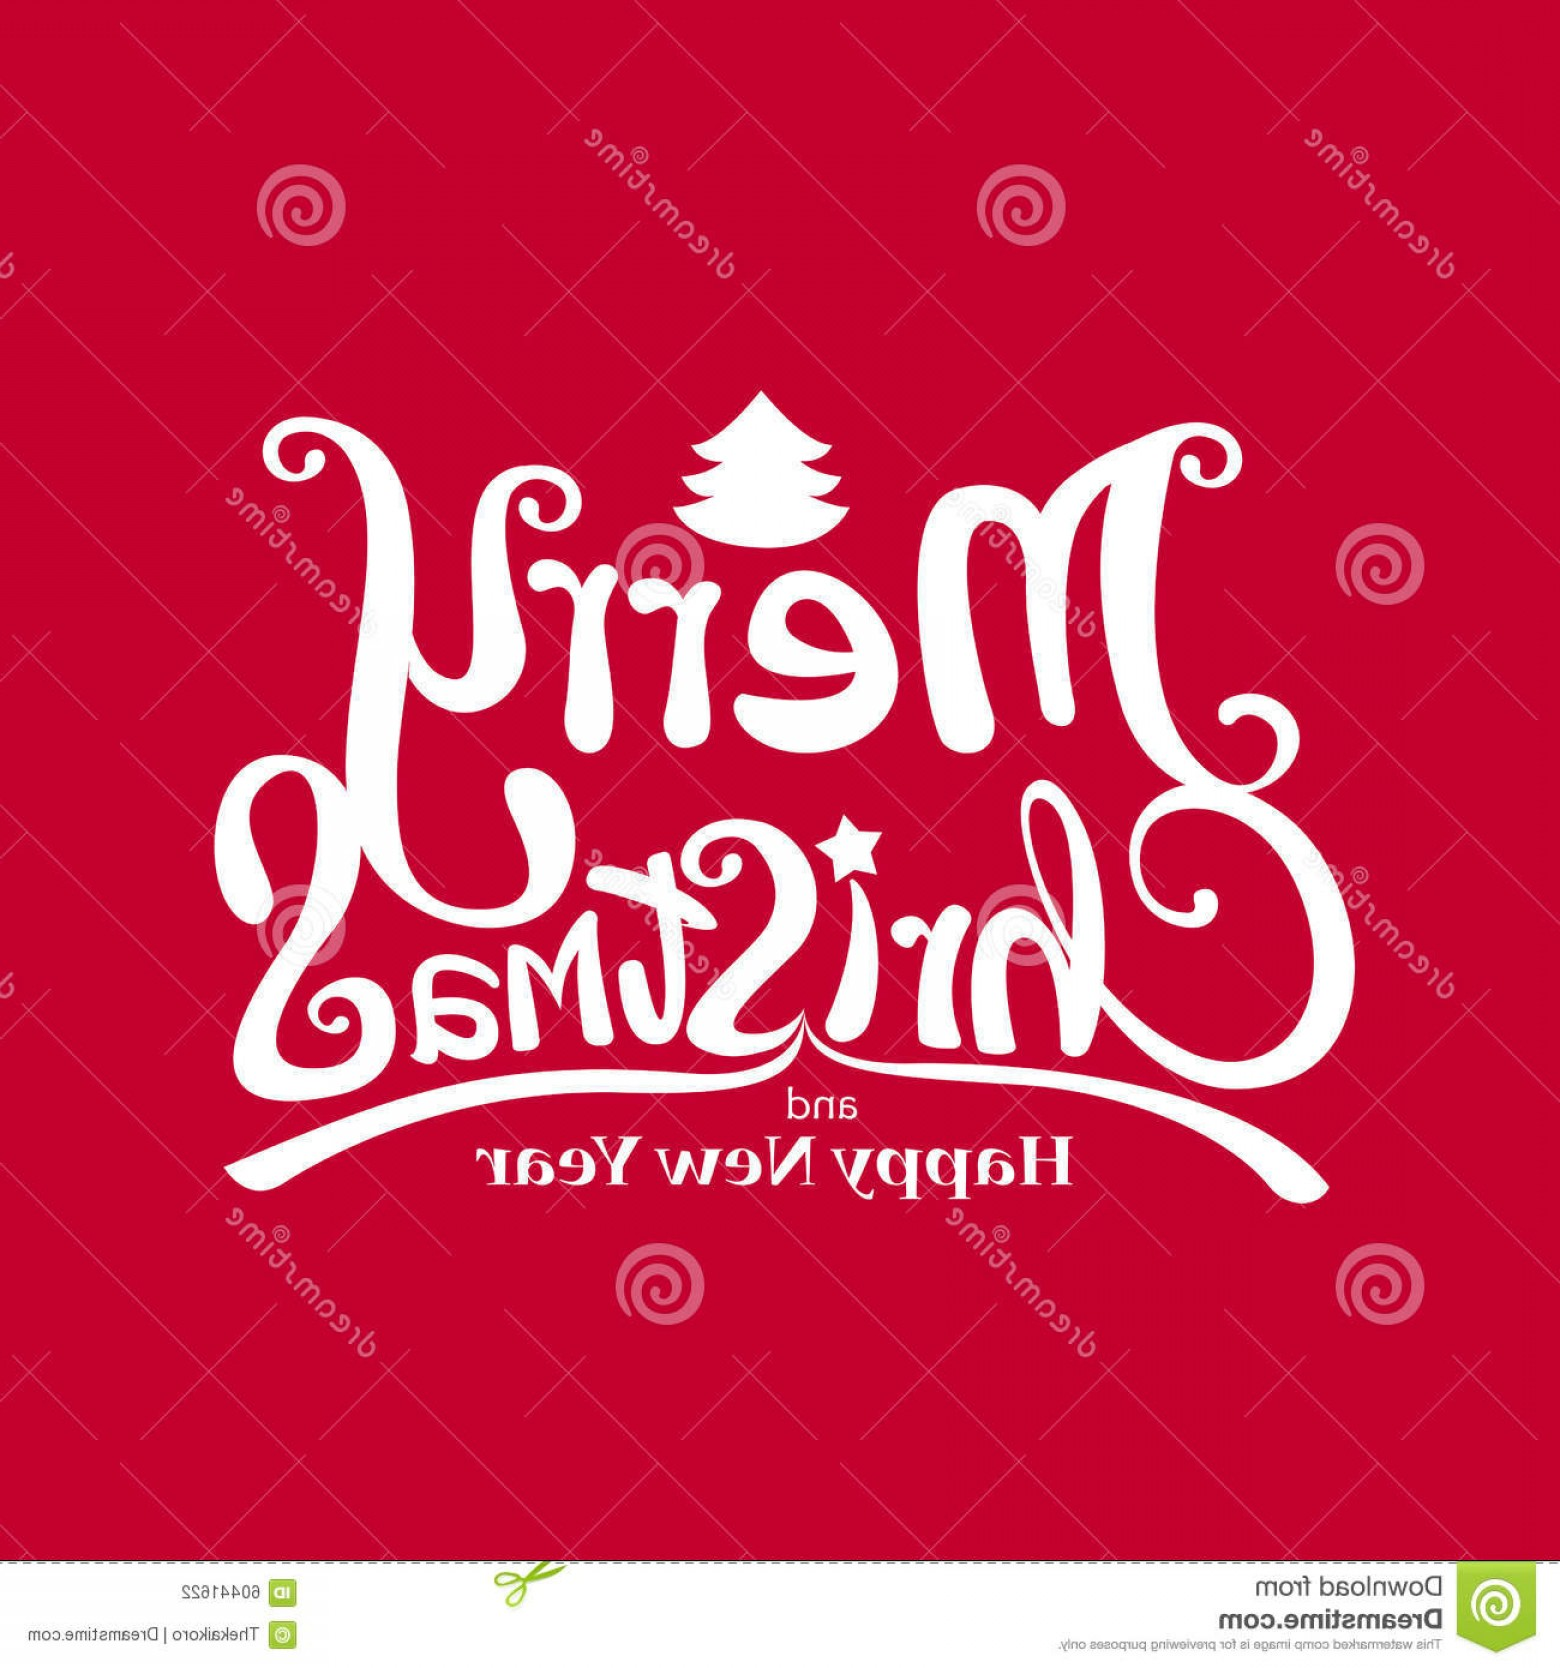 Merry Christmas Vector Graphic: Stock Illustration Merry Christmas Vector Calligraphic Free Hand Write Vector Il Red Background Illustration Eps Image